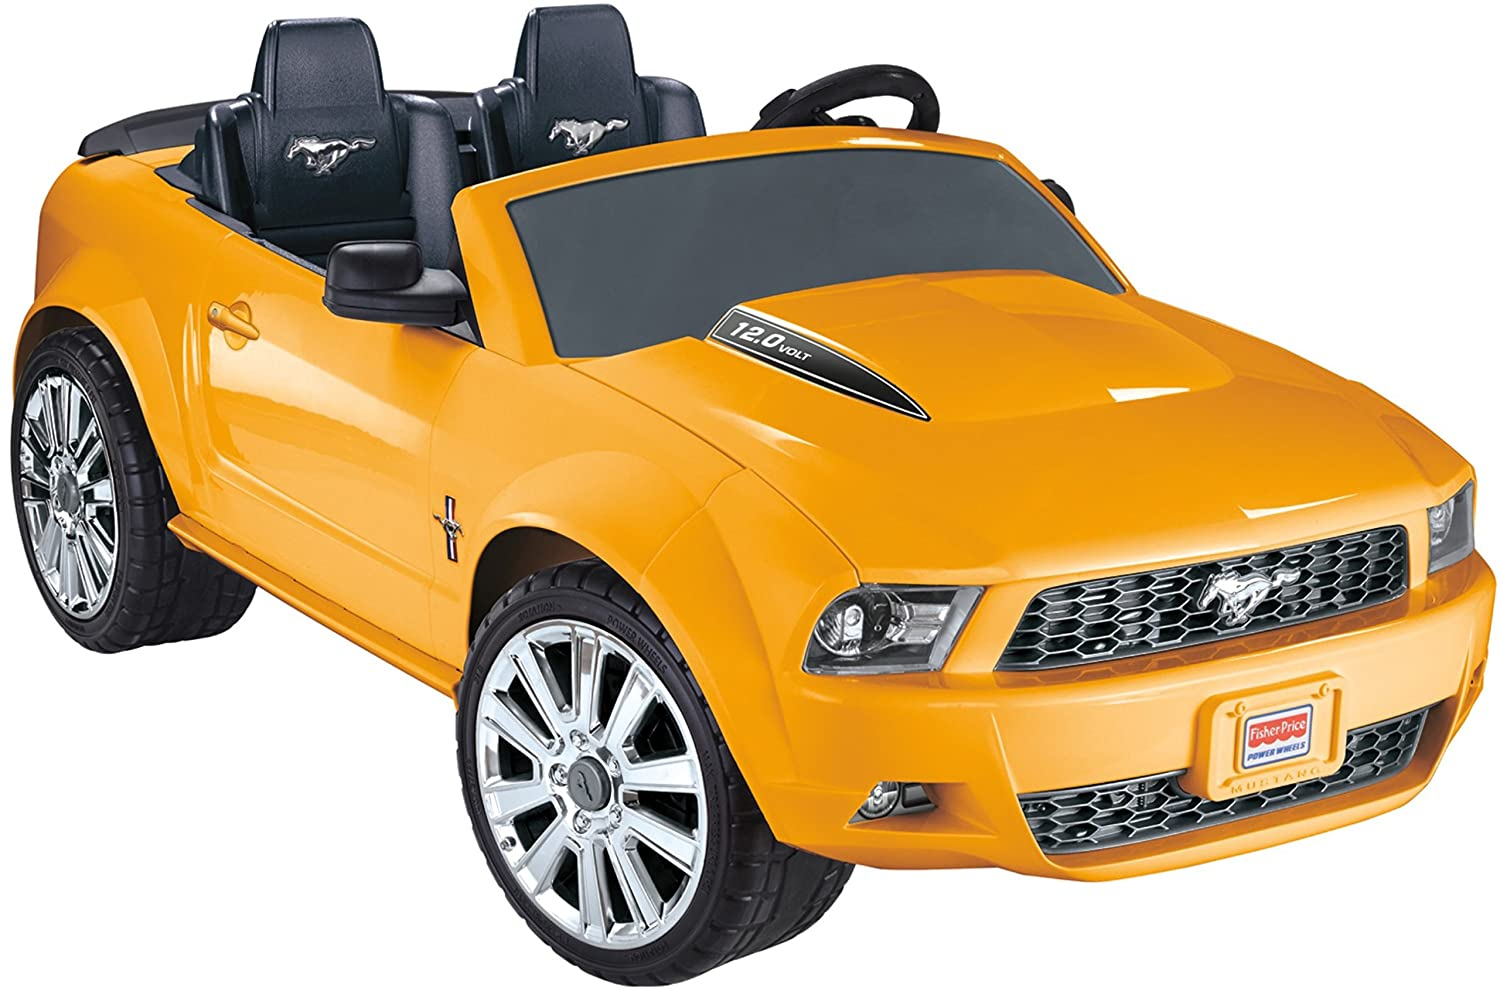 Power Wheels Ford Mustang, Yellow - The best power wheels for kids